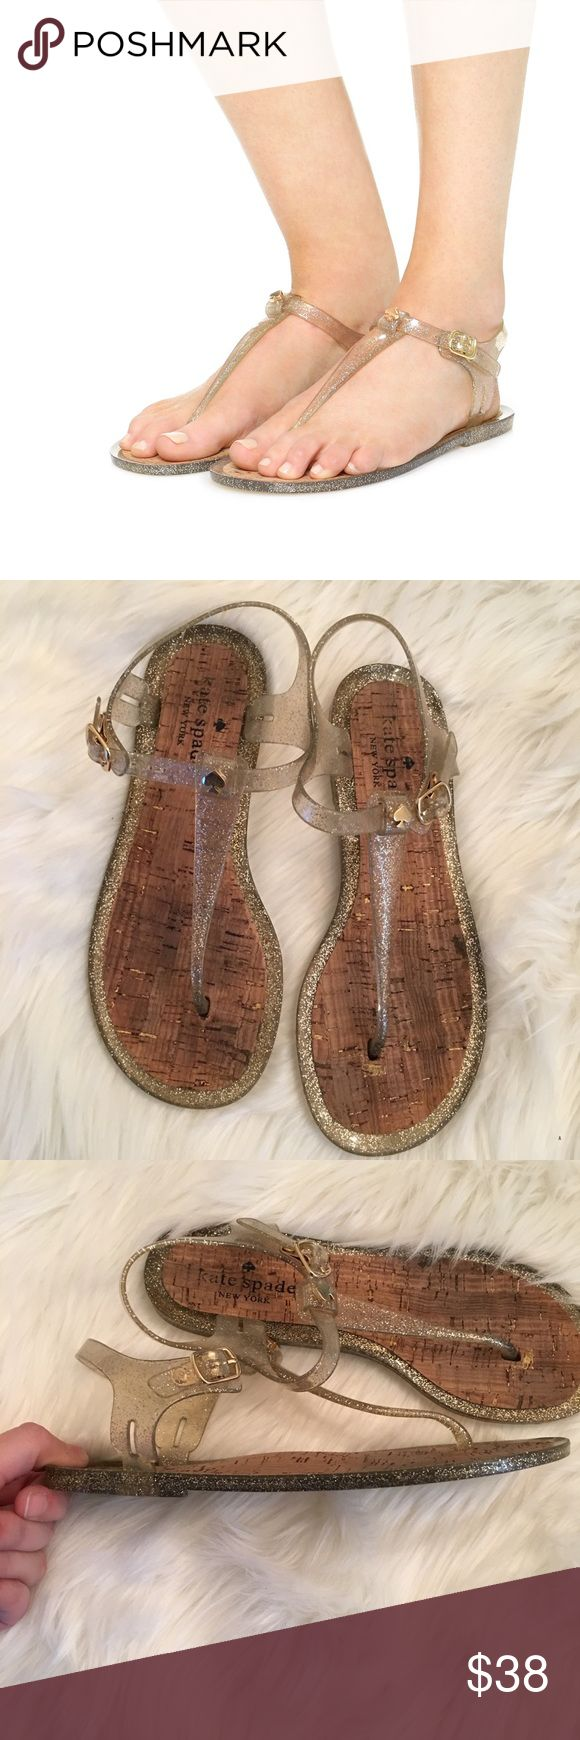 Kate Spade Yari Jelly Sandals Size 6 Super cute jelly KS jelly sandals. I'm good condition, but on the gold spades does have a few scuffs (shown in picture 5). Size 6 women's kate spade Shoes Sandals